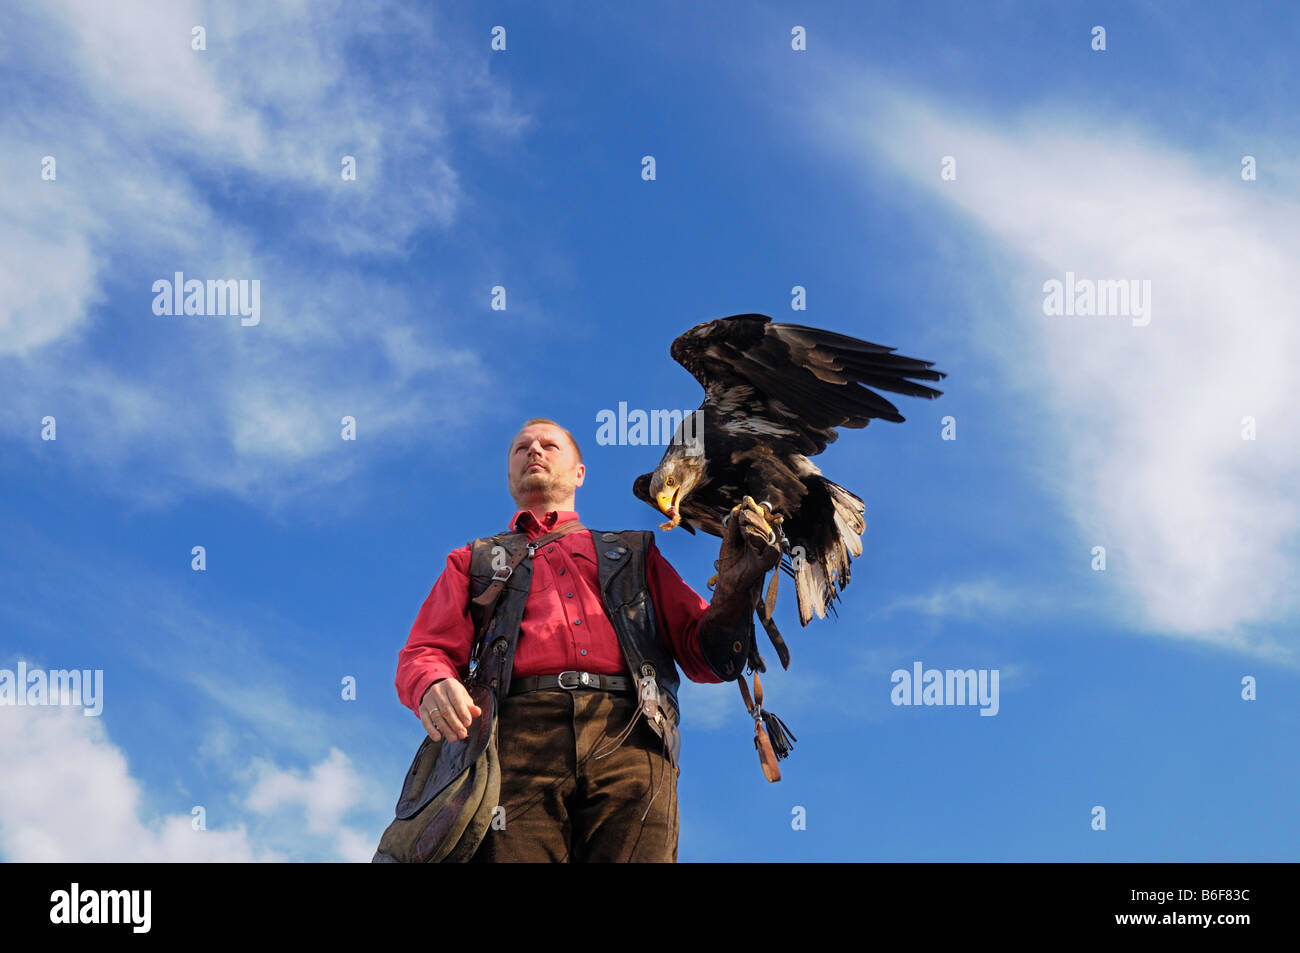 Eagle receiving its reward after landing on the falconer's gloved hand - Stock Image